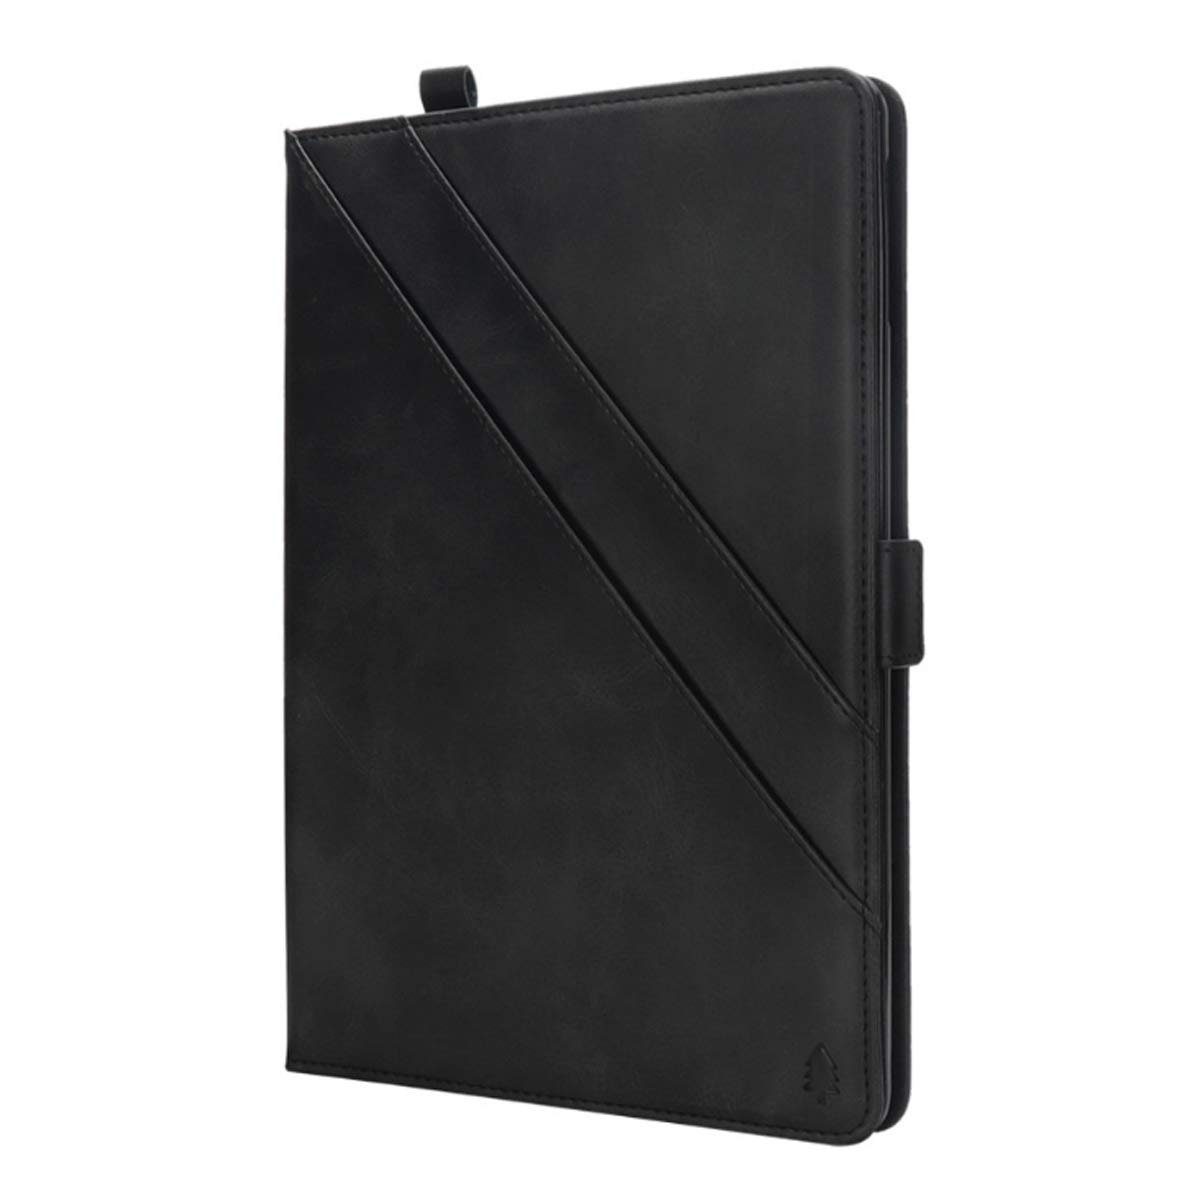 KATEGY iPad Pro 11 Inch Case with Pencil Holder, Premium PU Leather Folio Case with Apple Pencil Strap Holder and Card Slots Magnetic Smart Case Cover for iPad Pro 11 inch 2018 Release - Black by KATEGY (Image #2)